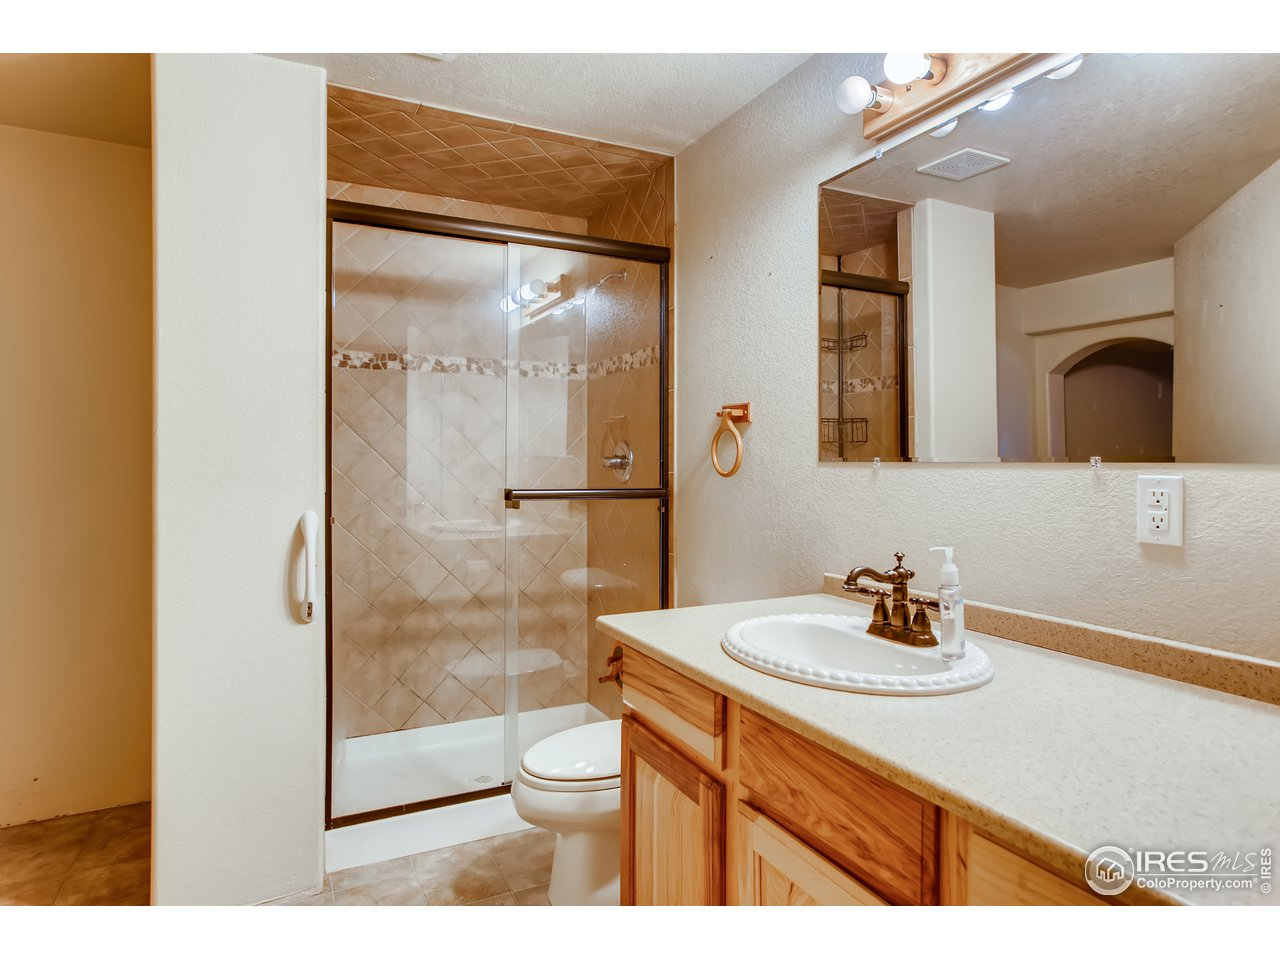 2nd Primary Bath in Basement